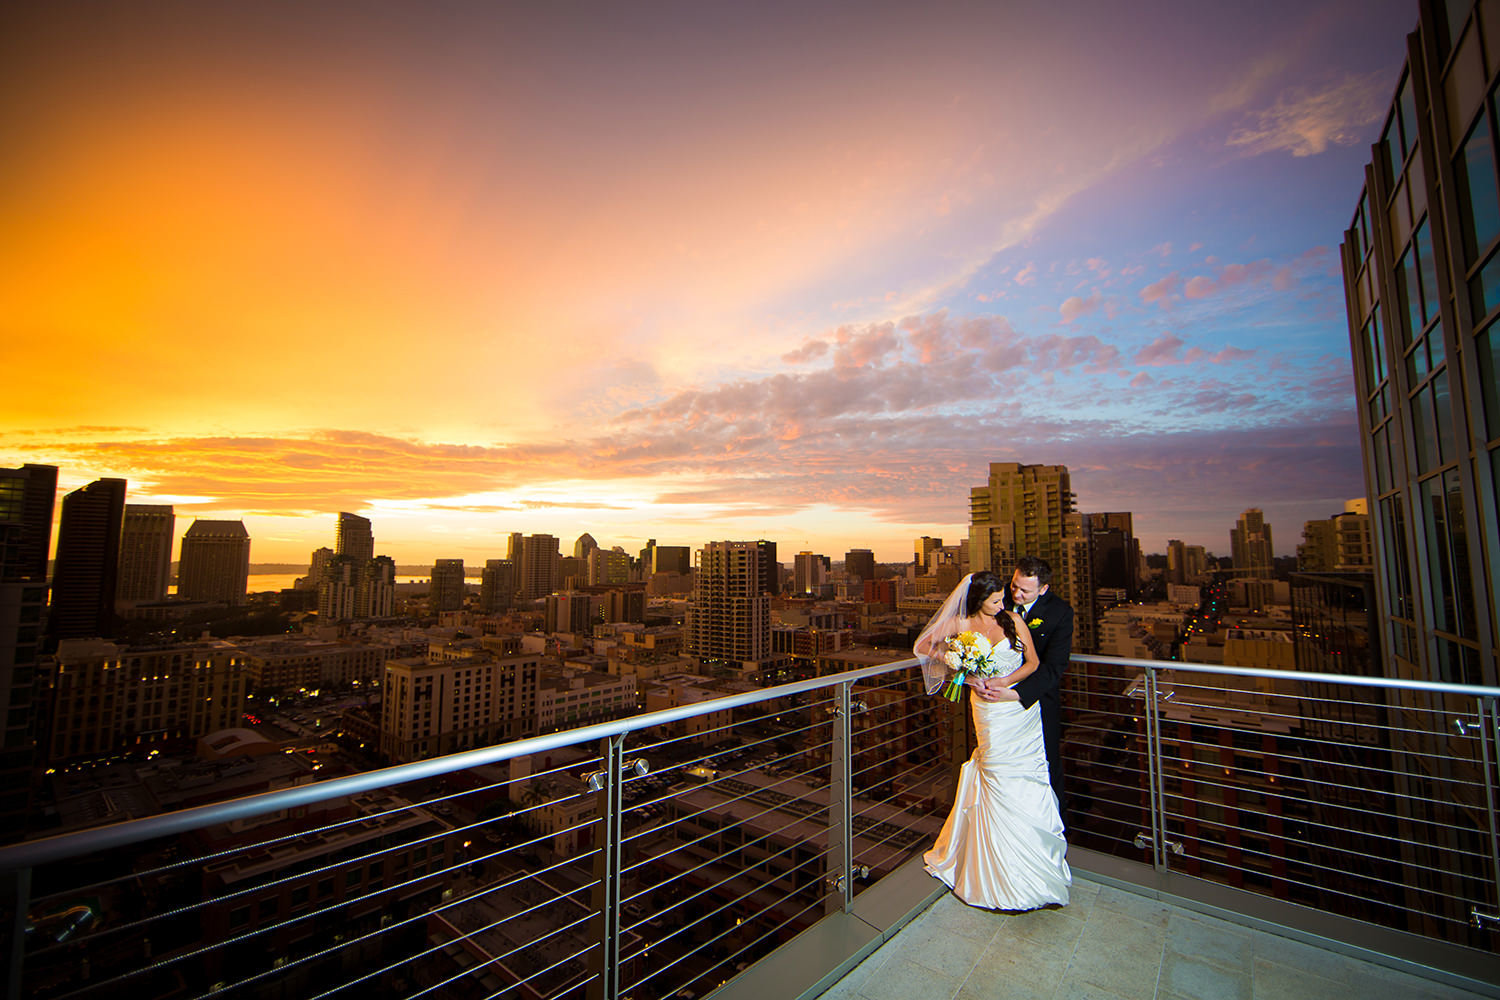 Romantic portrait with surreal sunset over the downtown San Diego skyline.